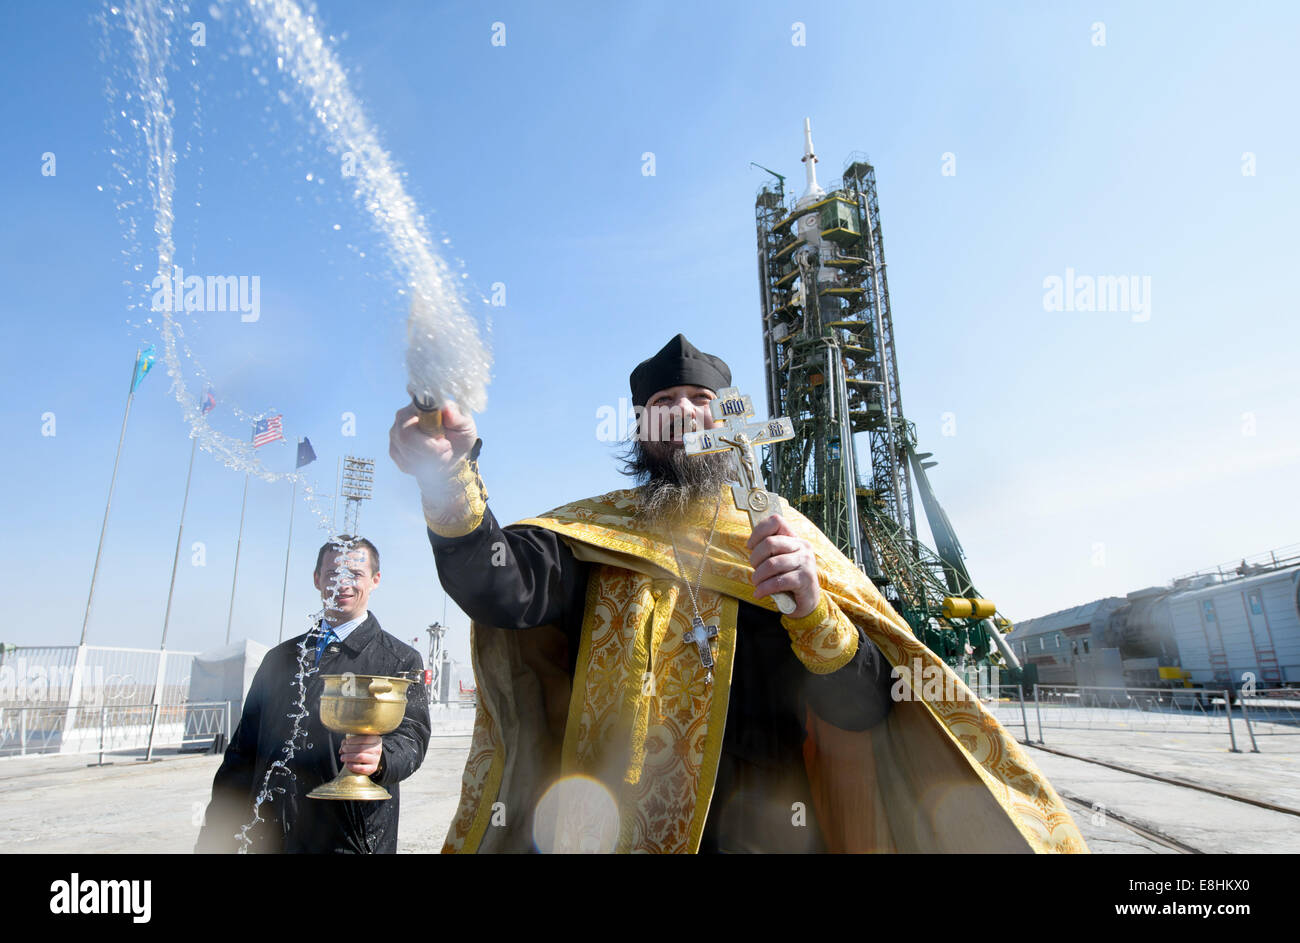 An Orthodox priest blesses members of the media on the Soyouz launch pad at the Baikonur Cosmodrome launch pad on - Stock Image